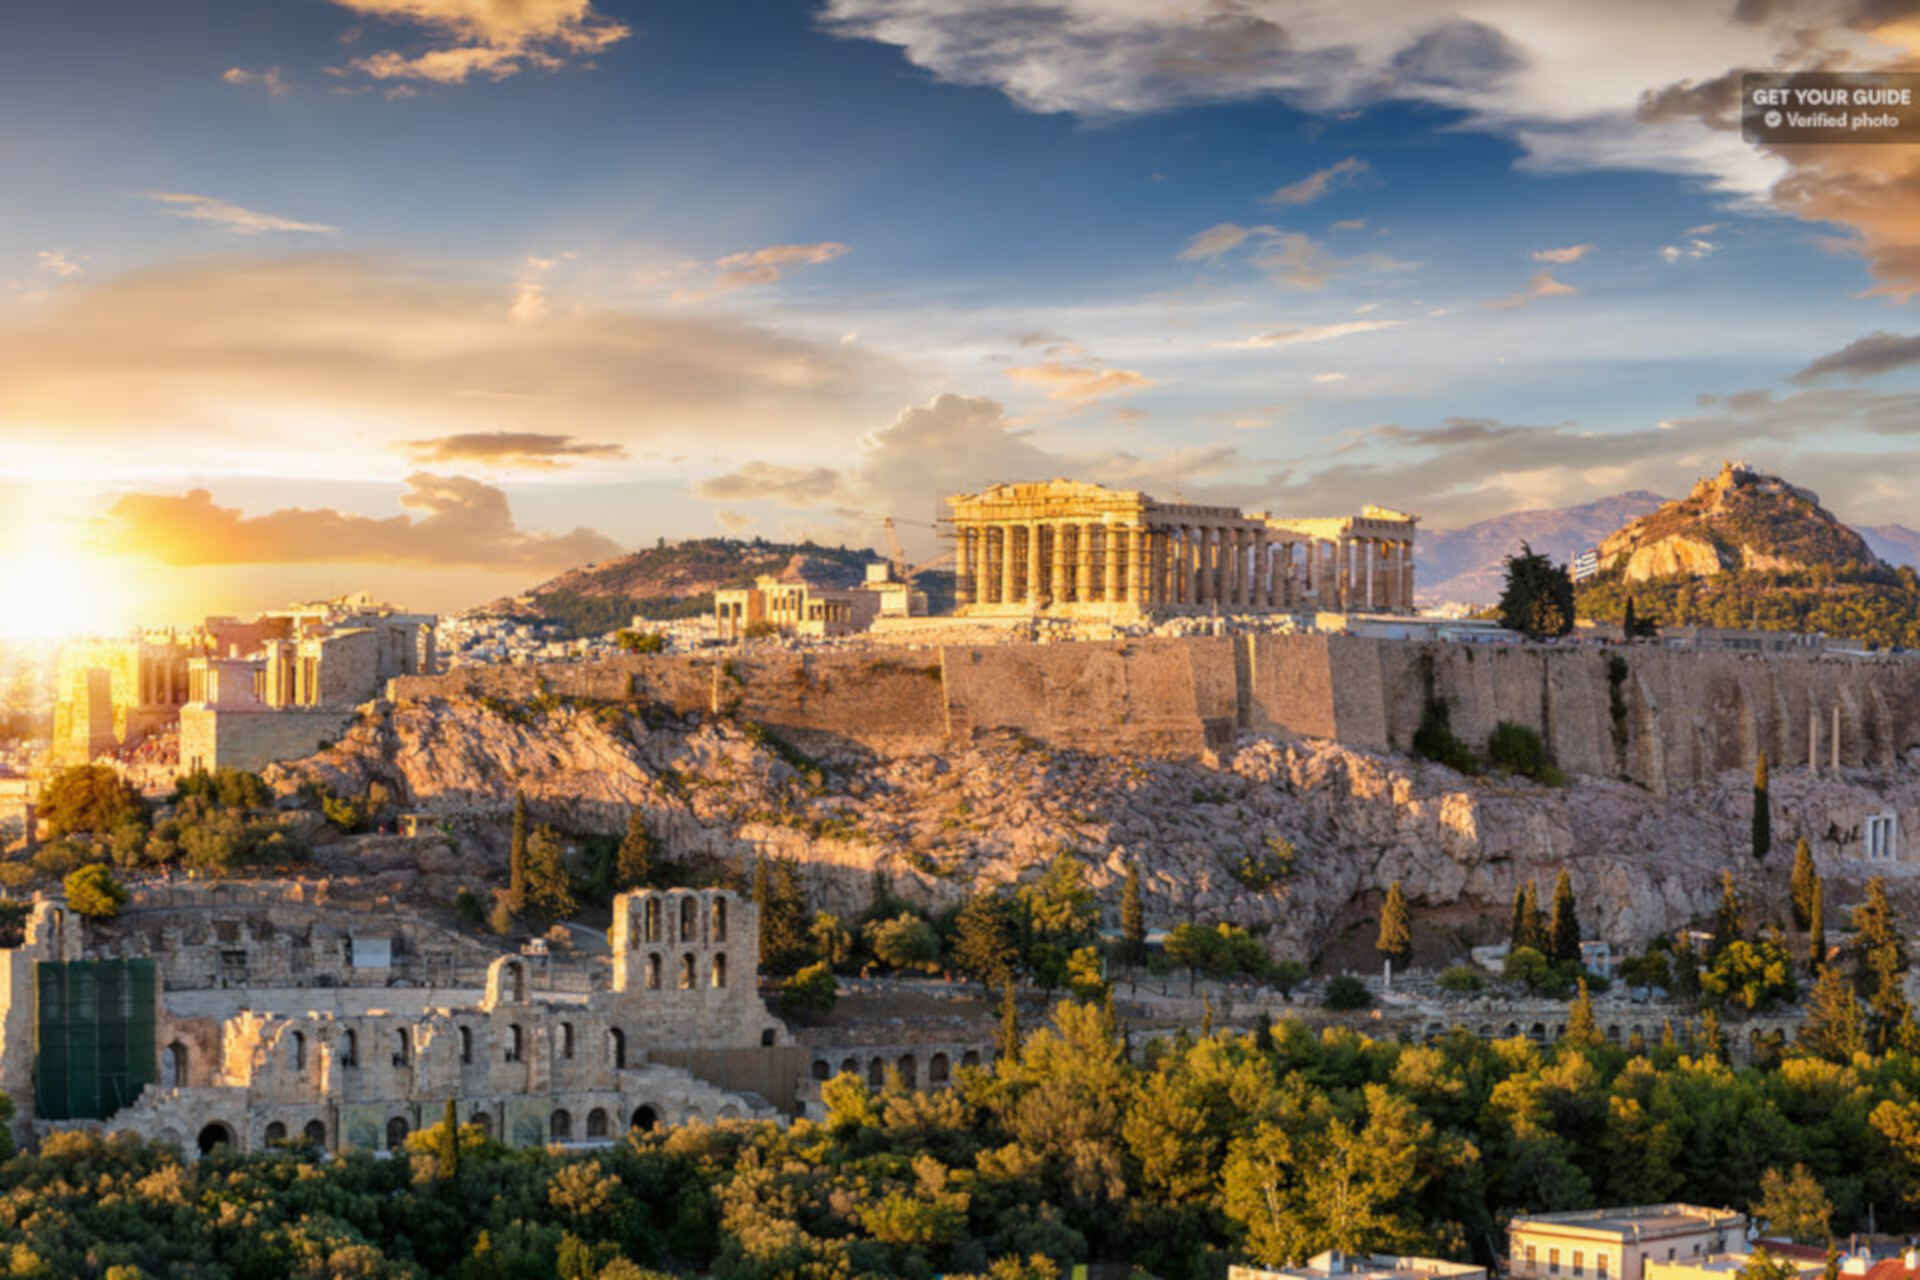 Athens Greece landmarks. The Parthenon.